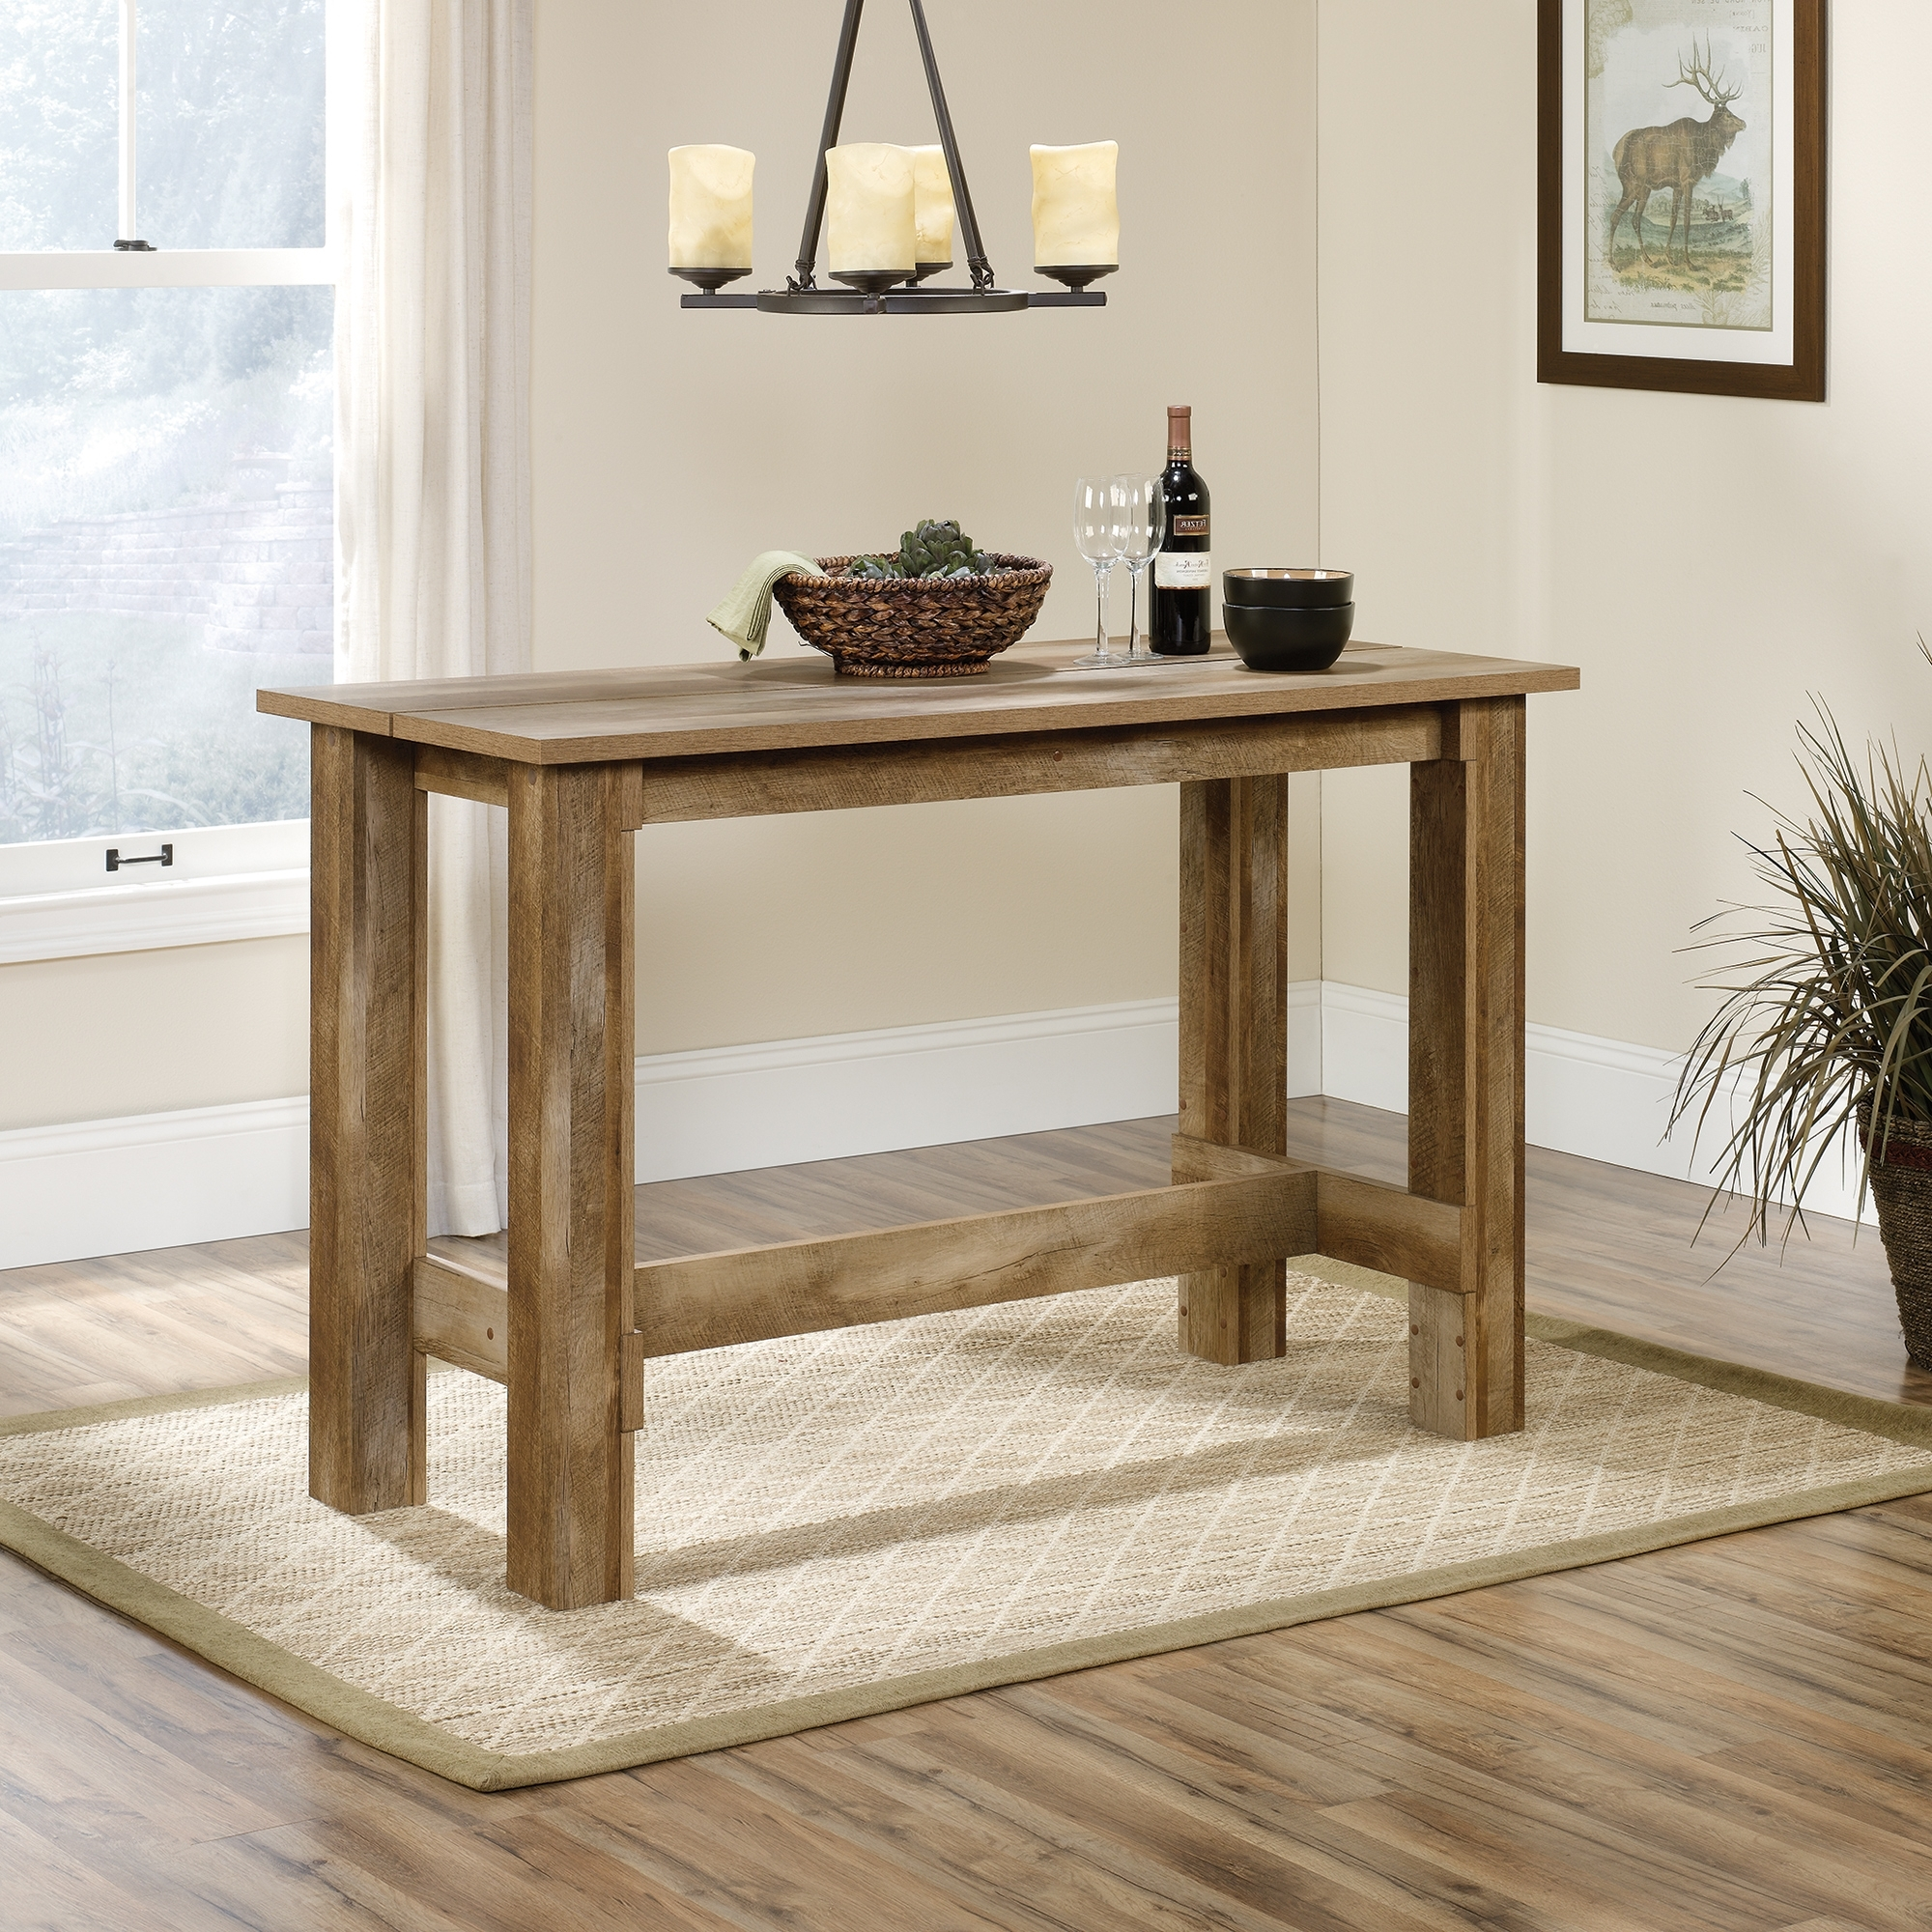 Craftsman 9 Piece Extension Dining Sets Regarding Current Boone Mountain Counter Height Dinette Table (416698) – Sauder (View 10 of 25)